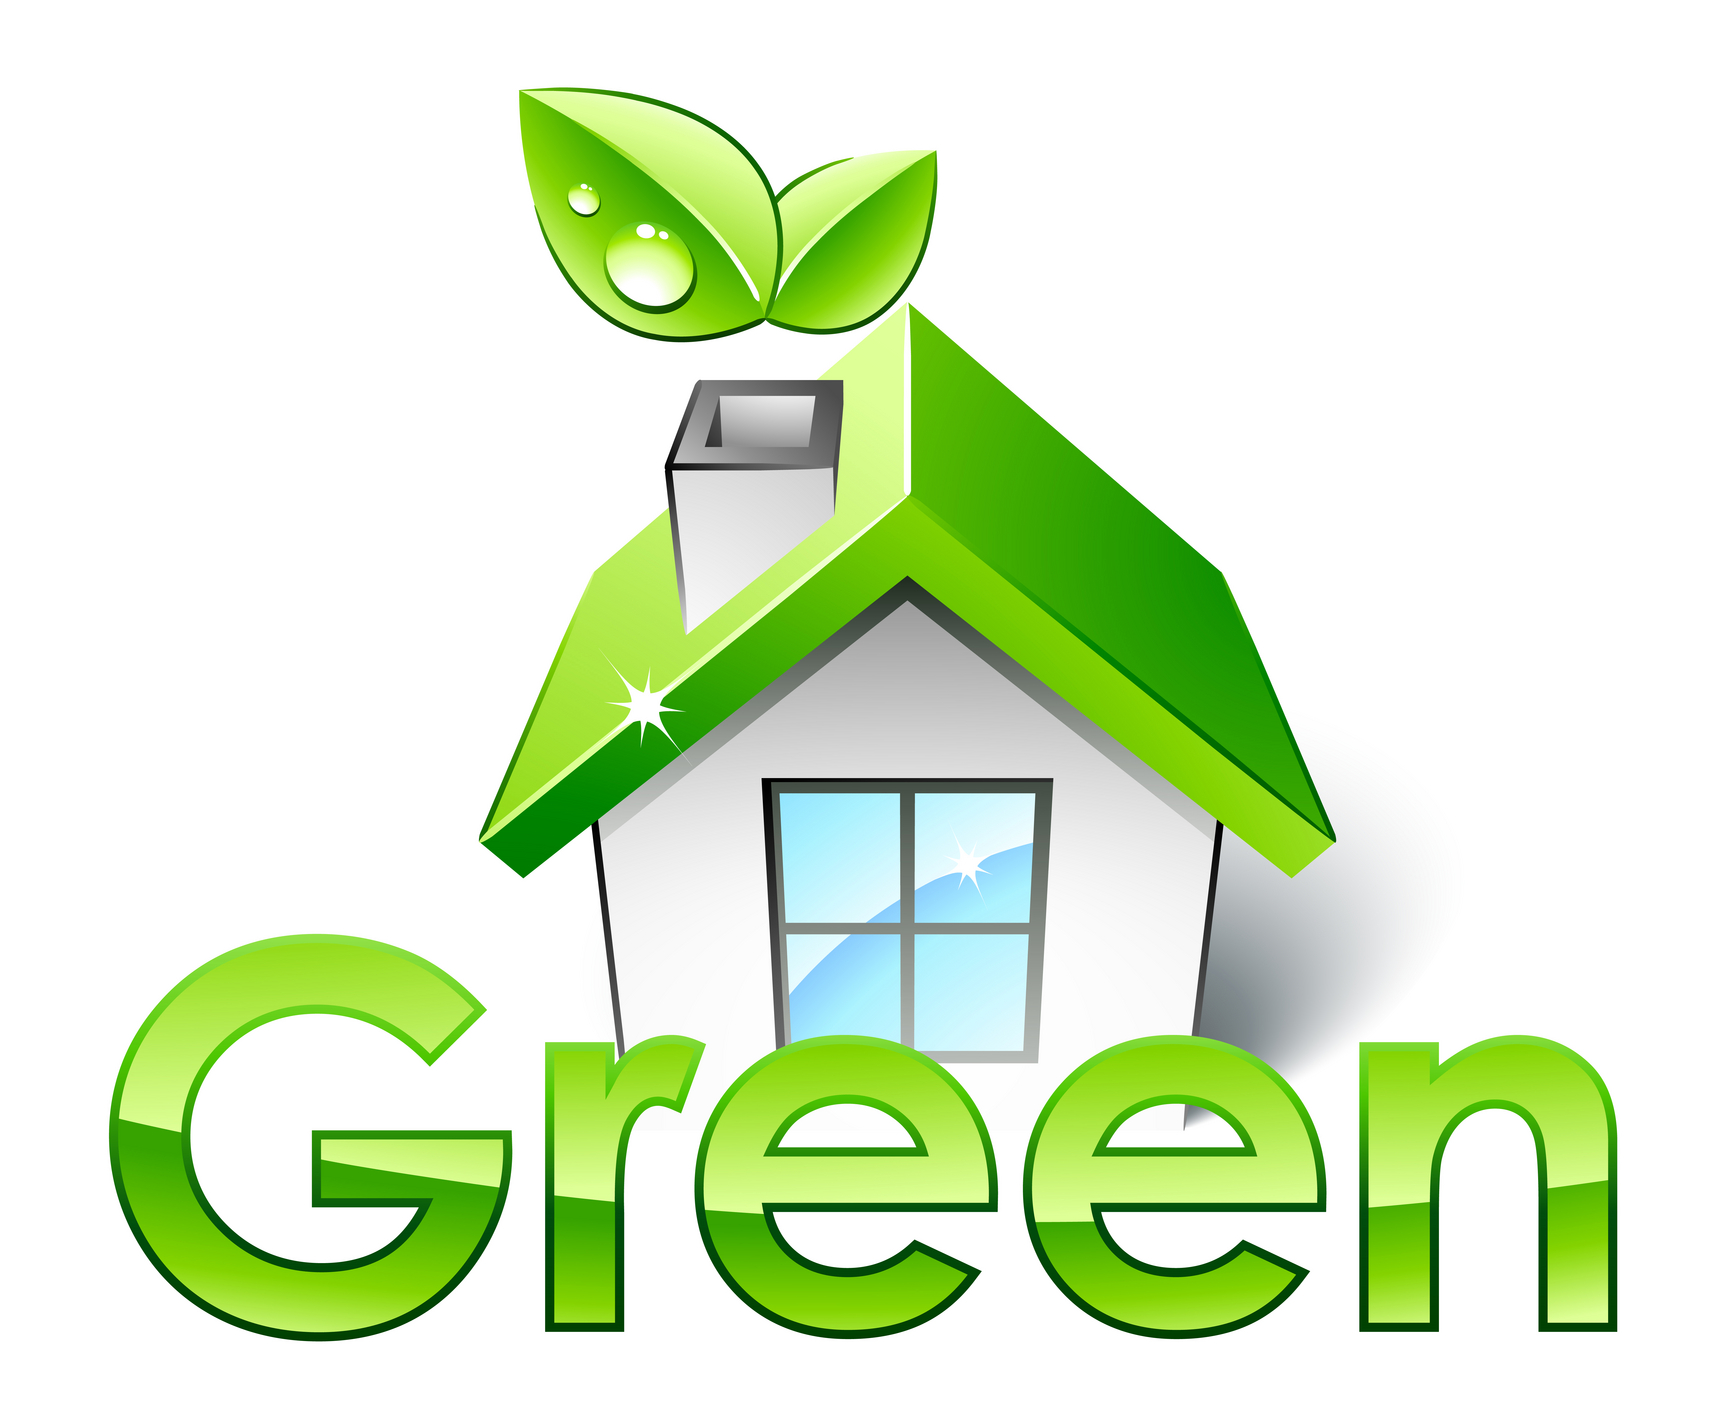 go green clip art pictures - photo #27